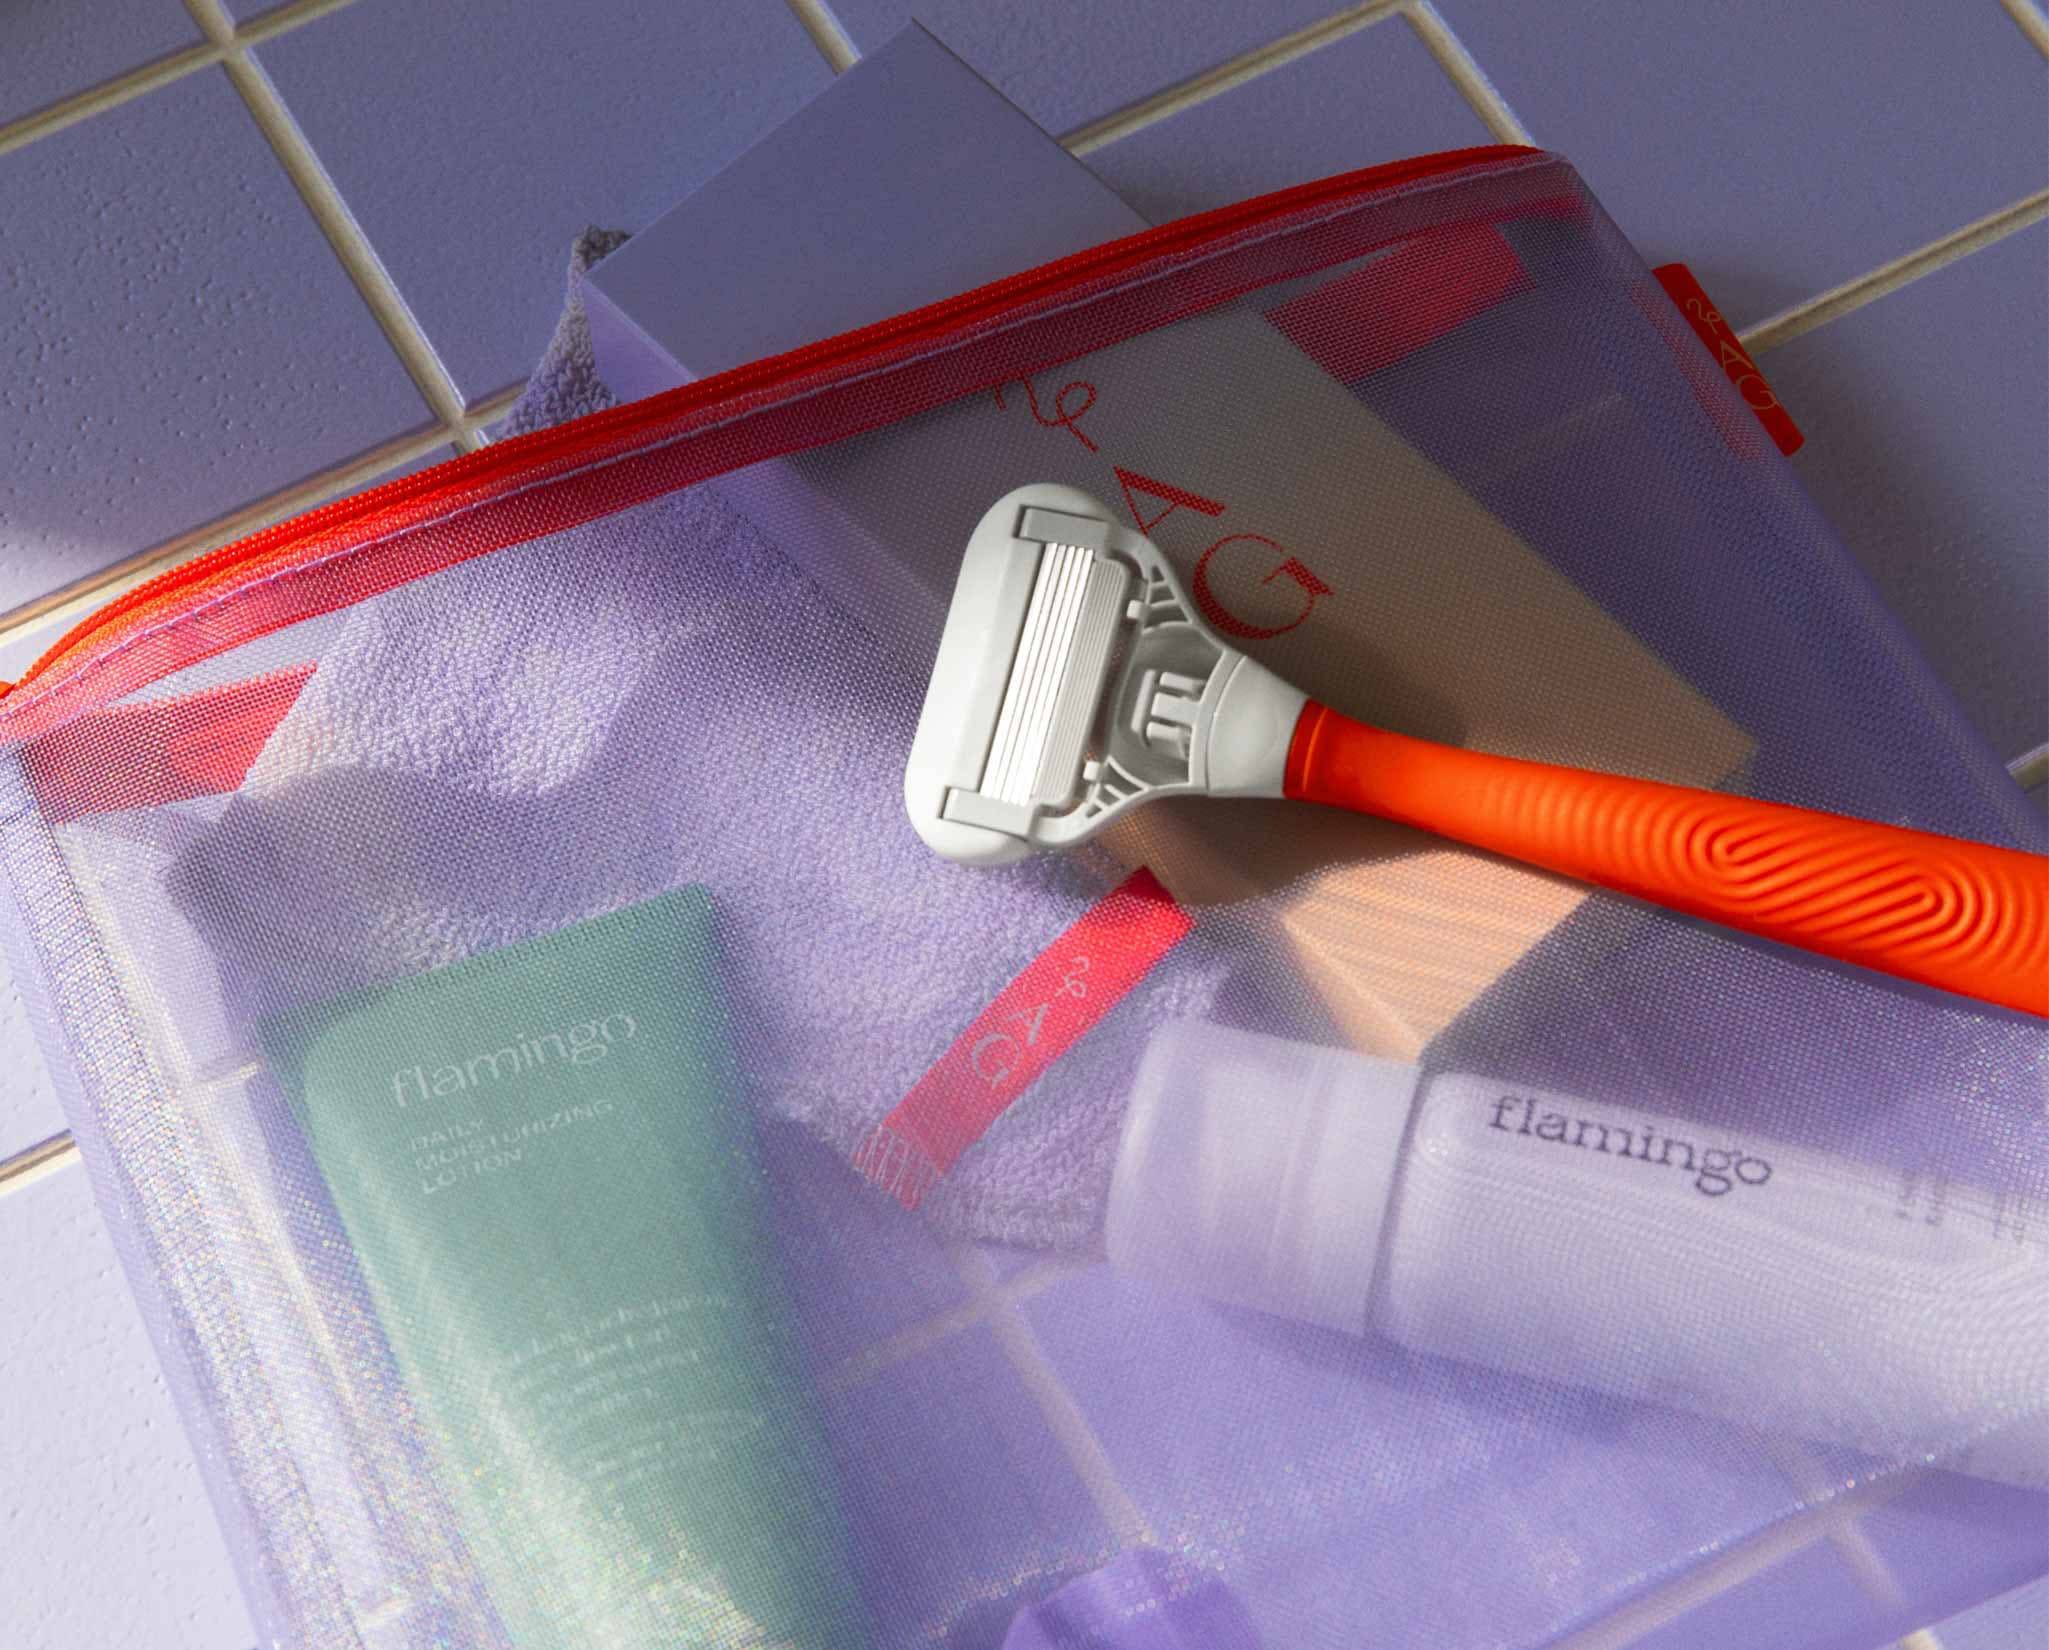 Shave set in a pouch